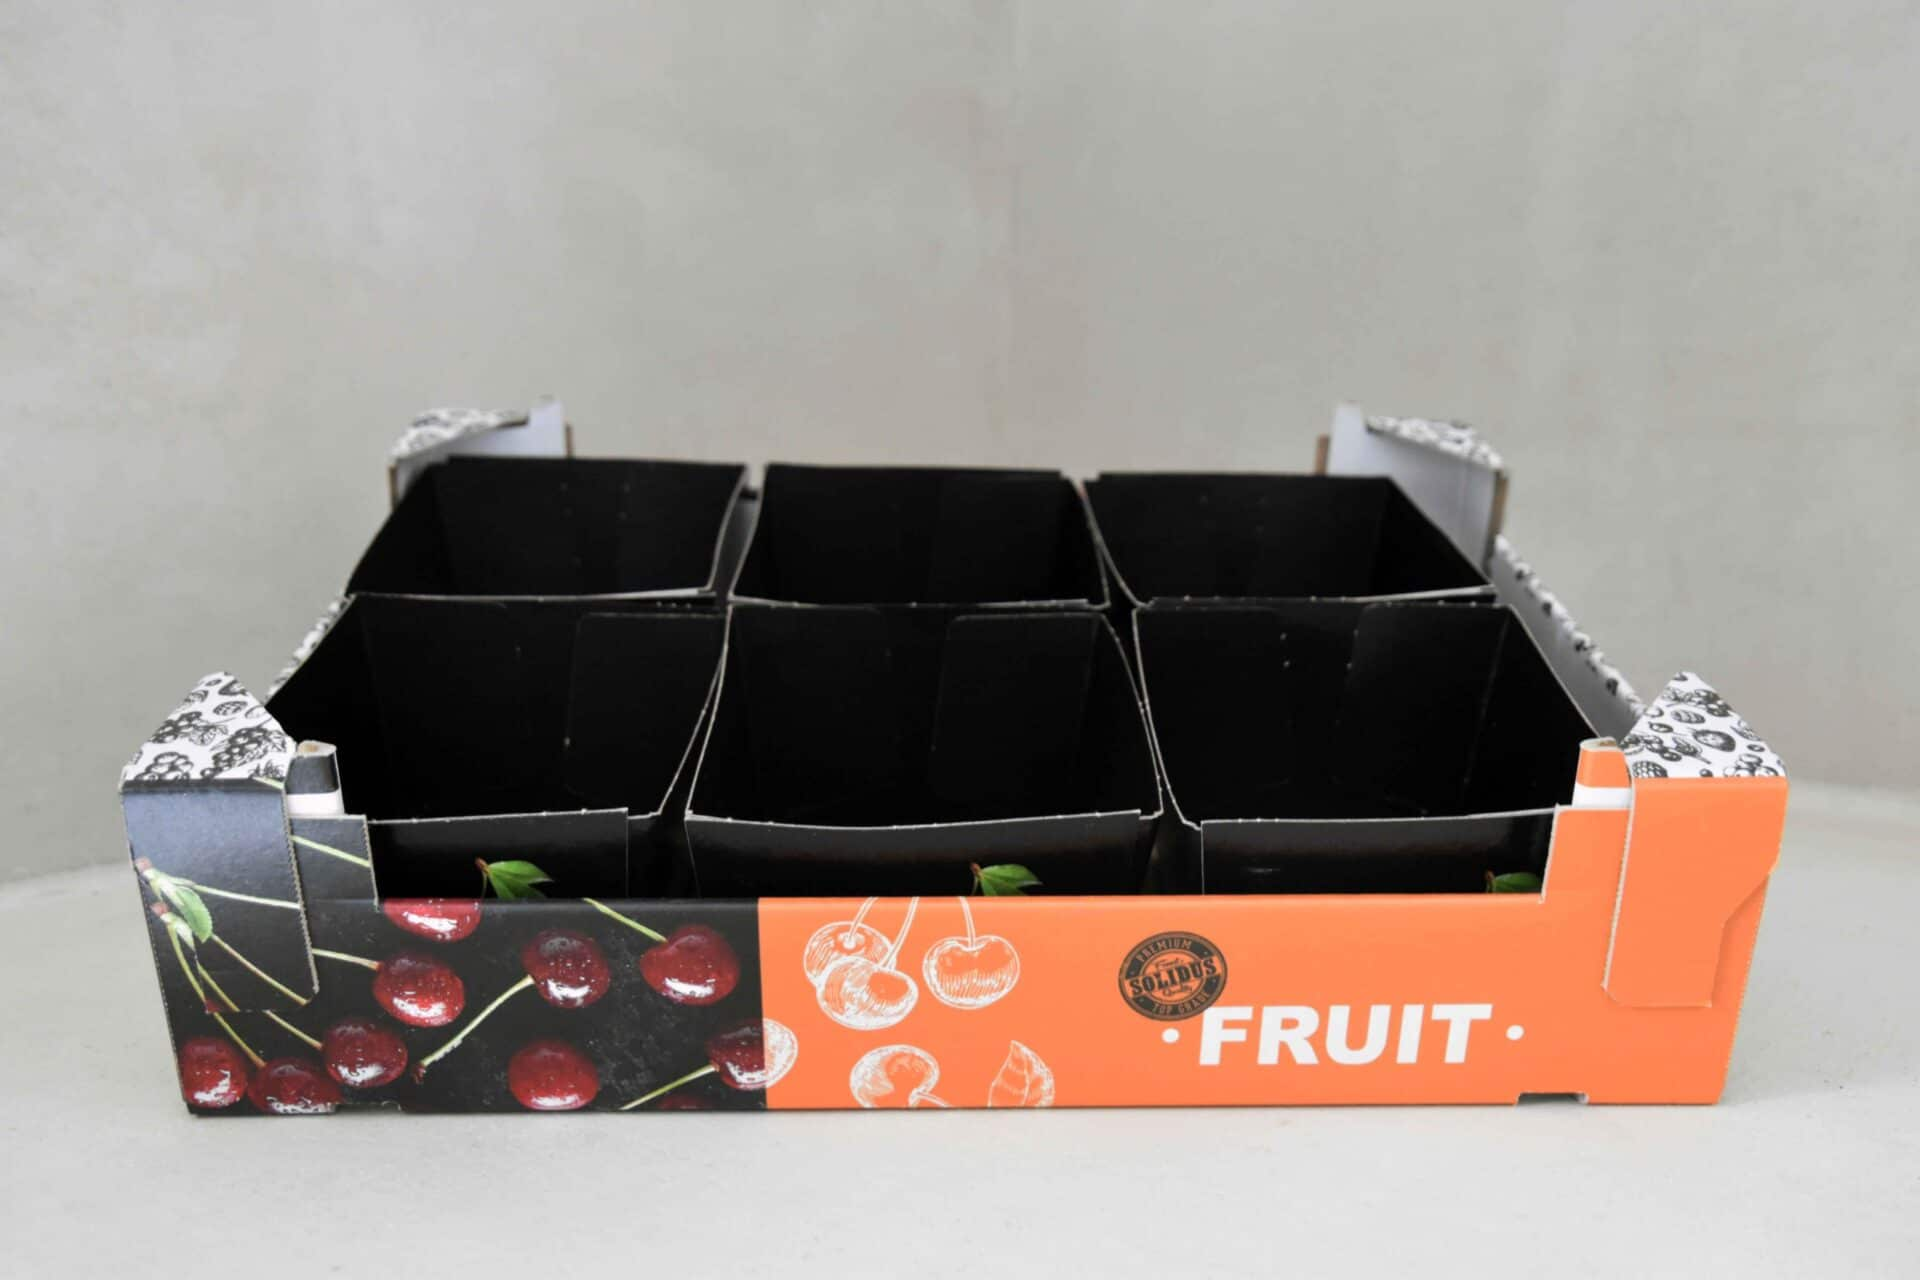 Fruit & vegetable packaging